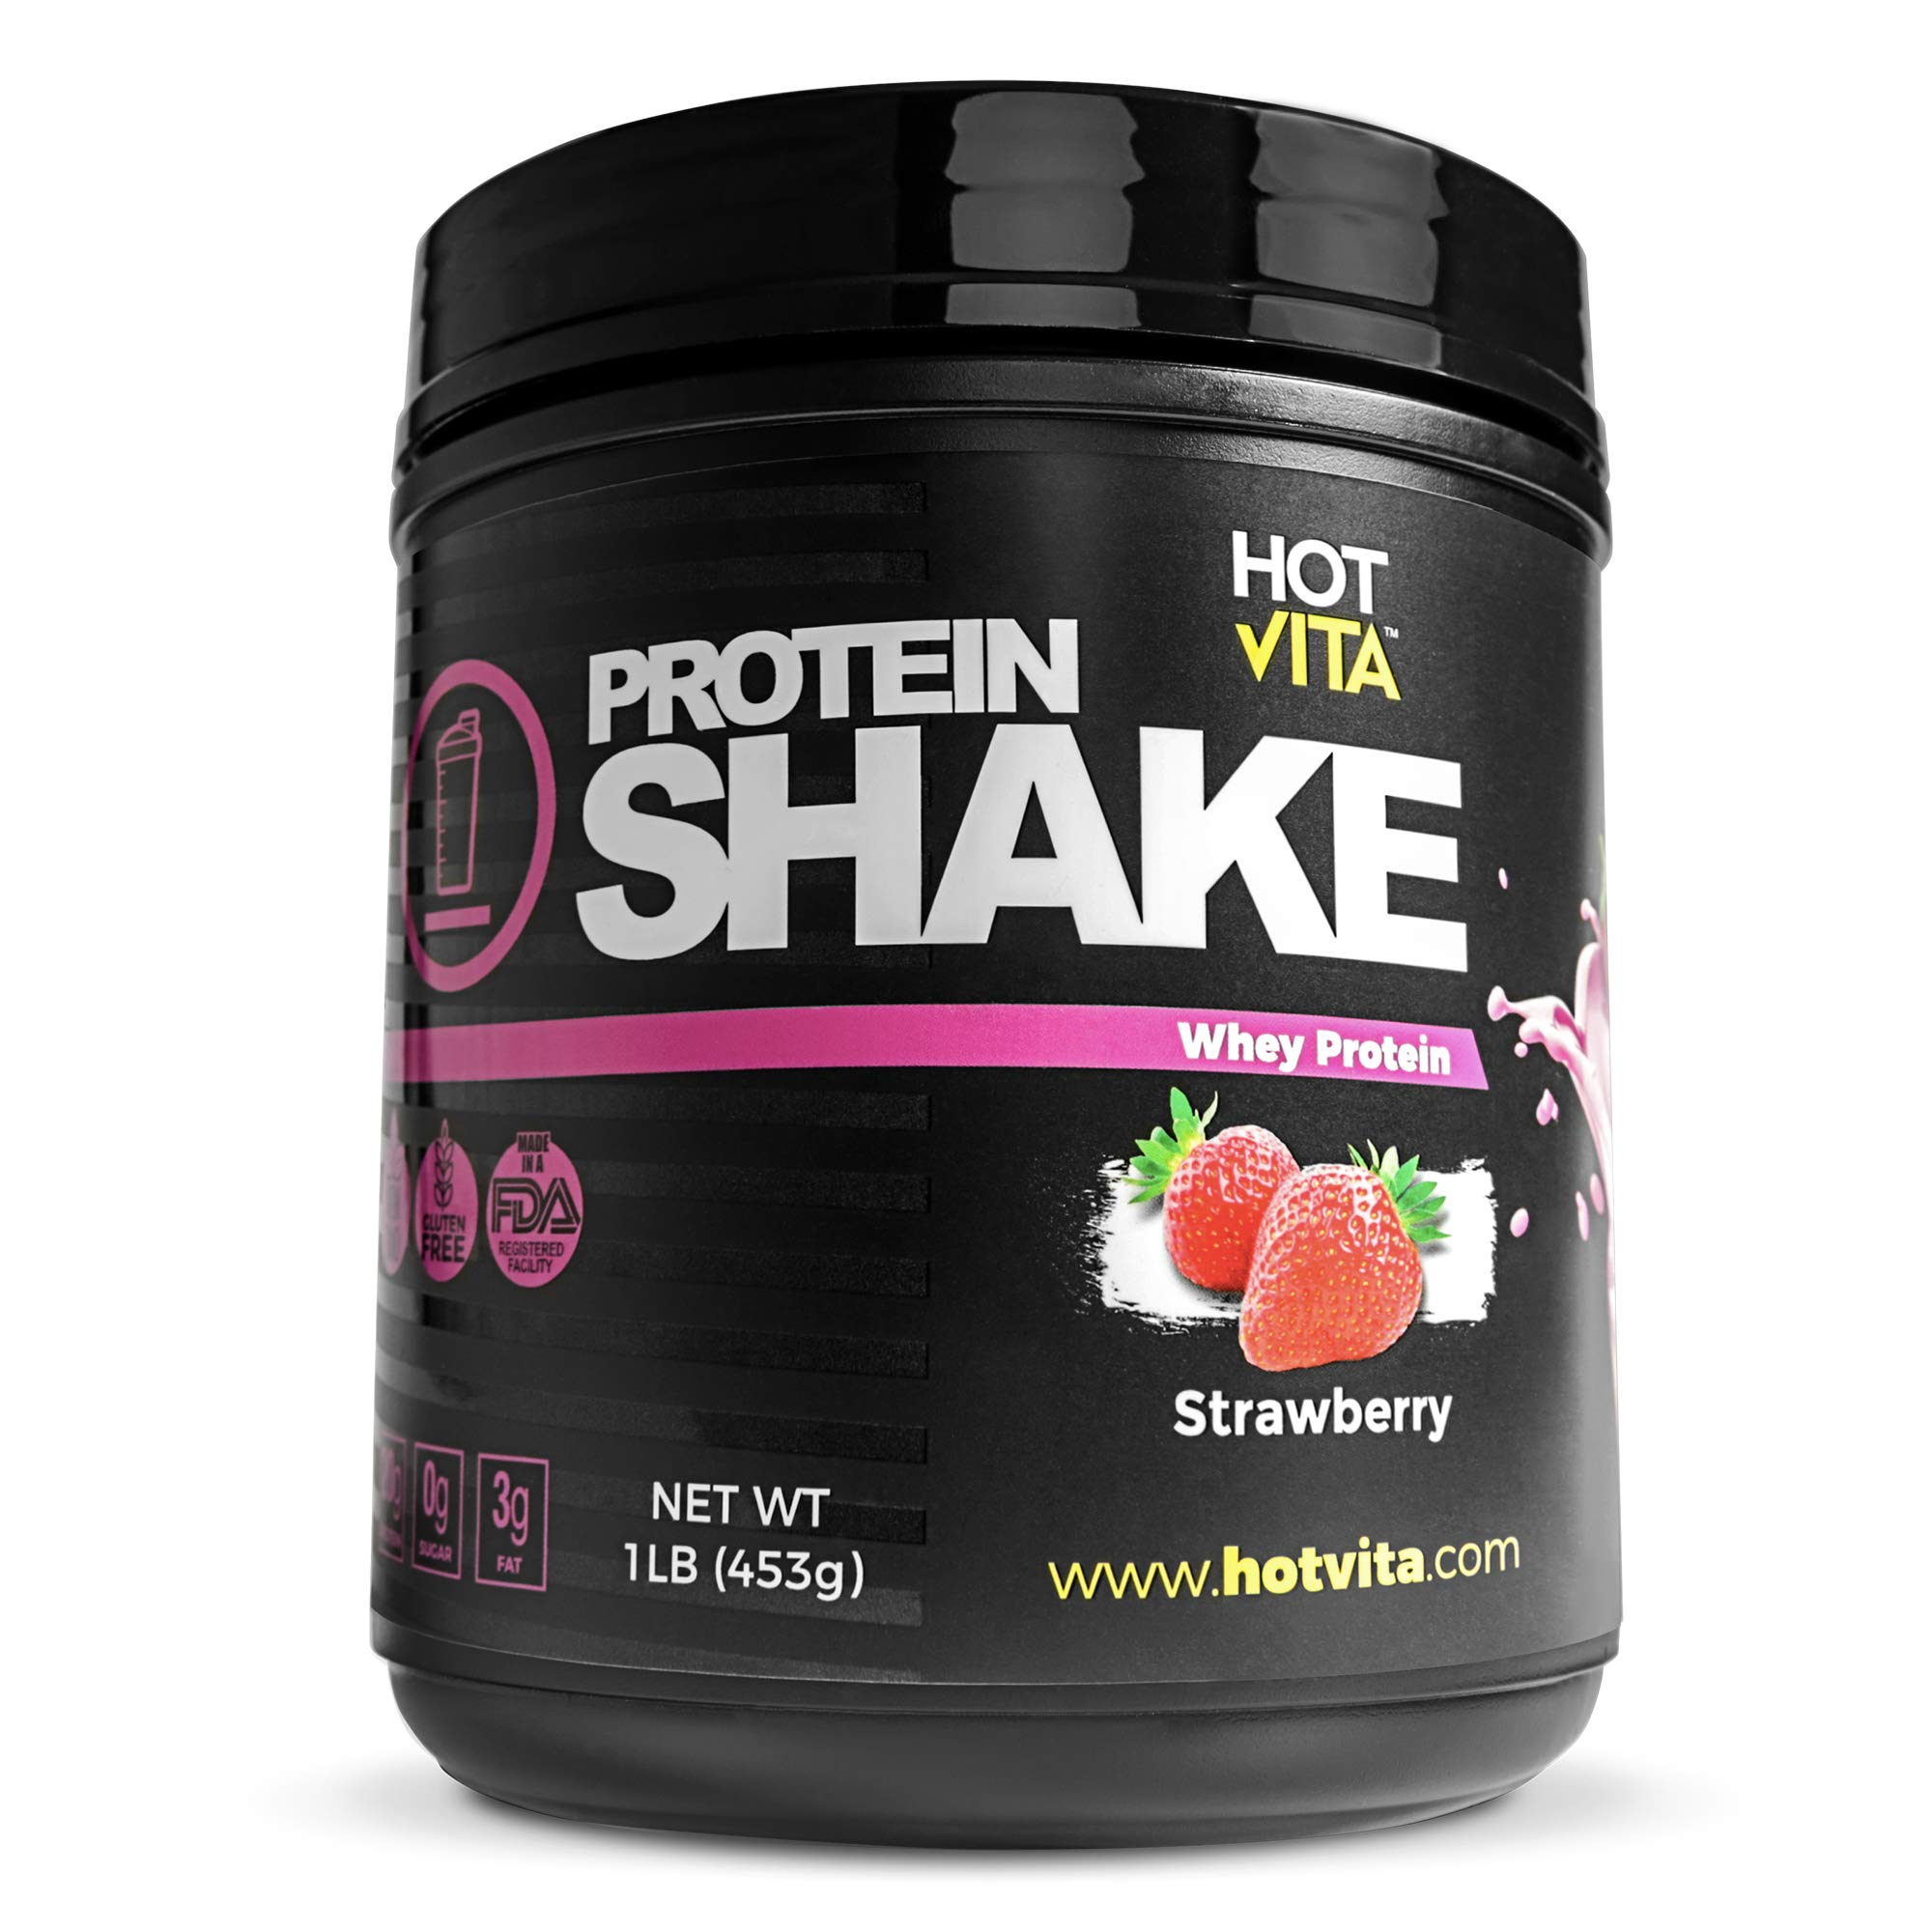 Hot Vita Meal Replacement Protein Shakes for Women - Gluten Free, Non-GMO, Meal Replacement Protein Powder for Weight Loss (Strawberry) by Hot Vita